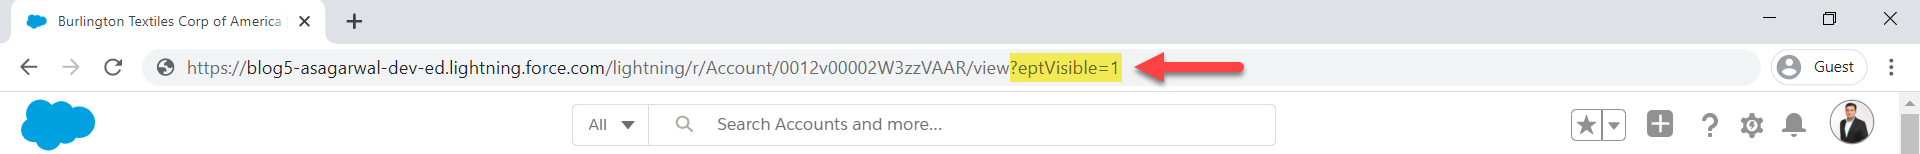 add string ?eptVisible=1 to url